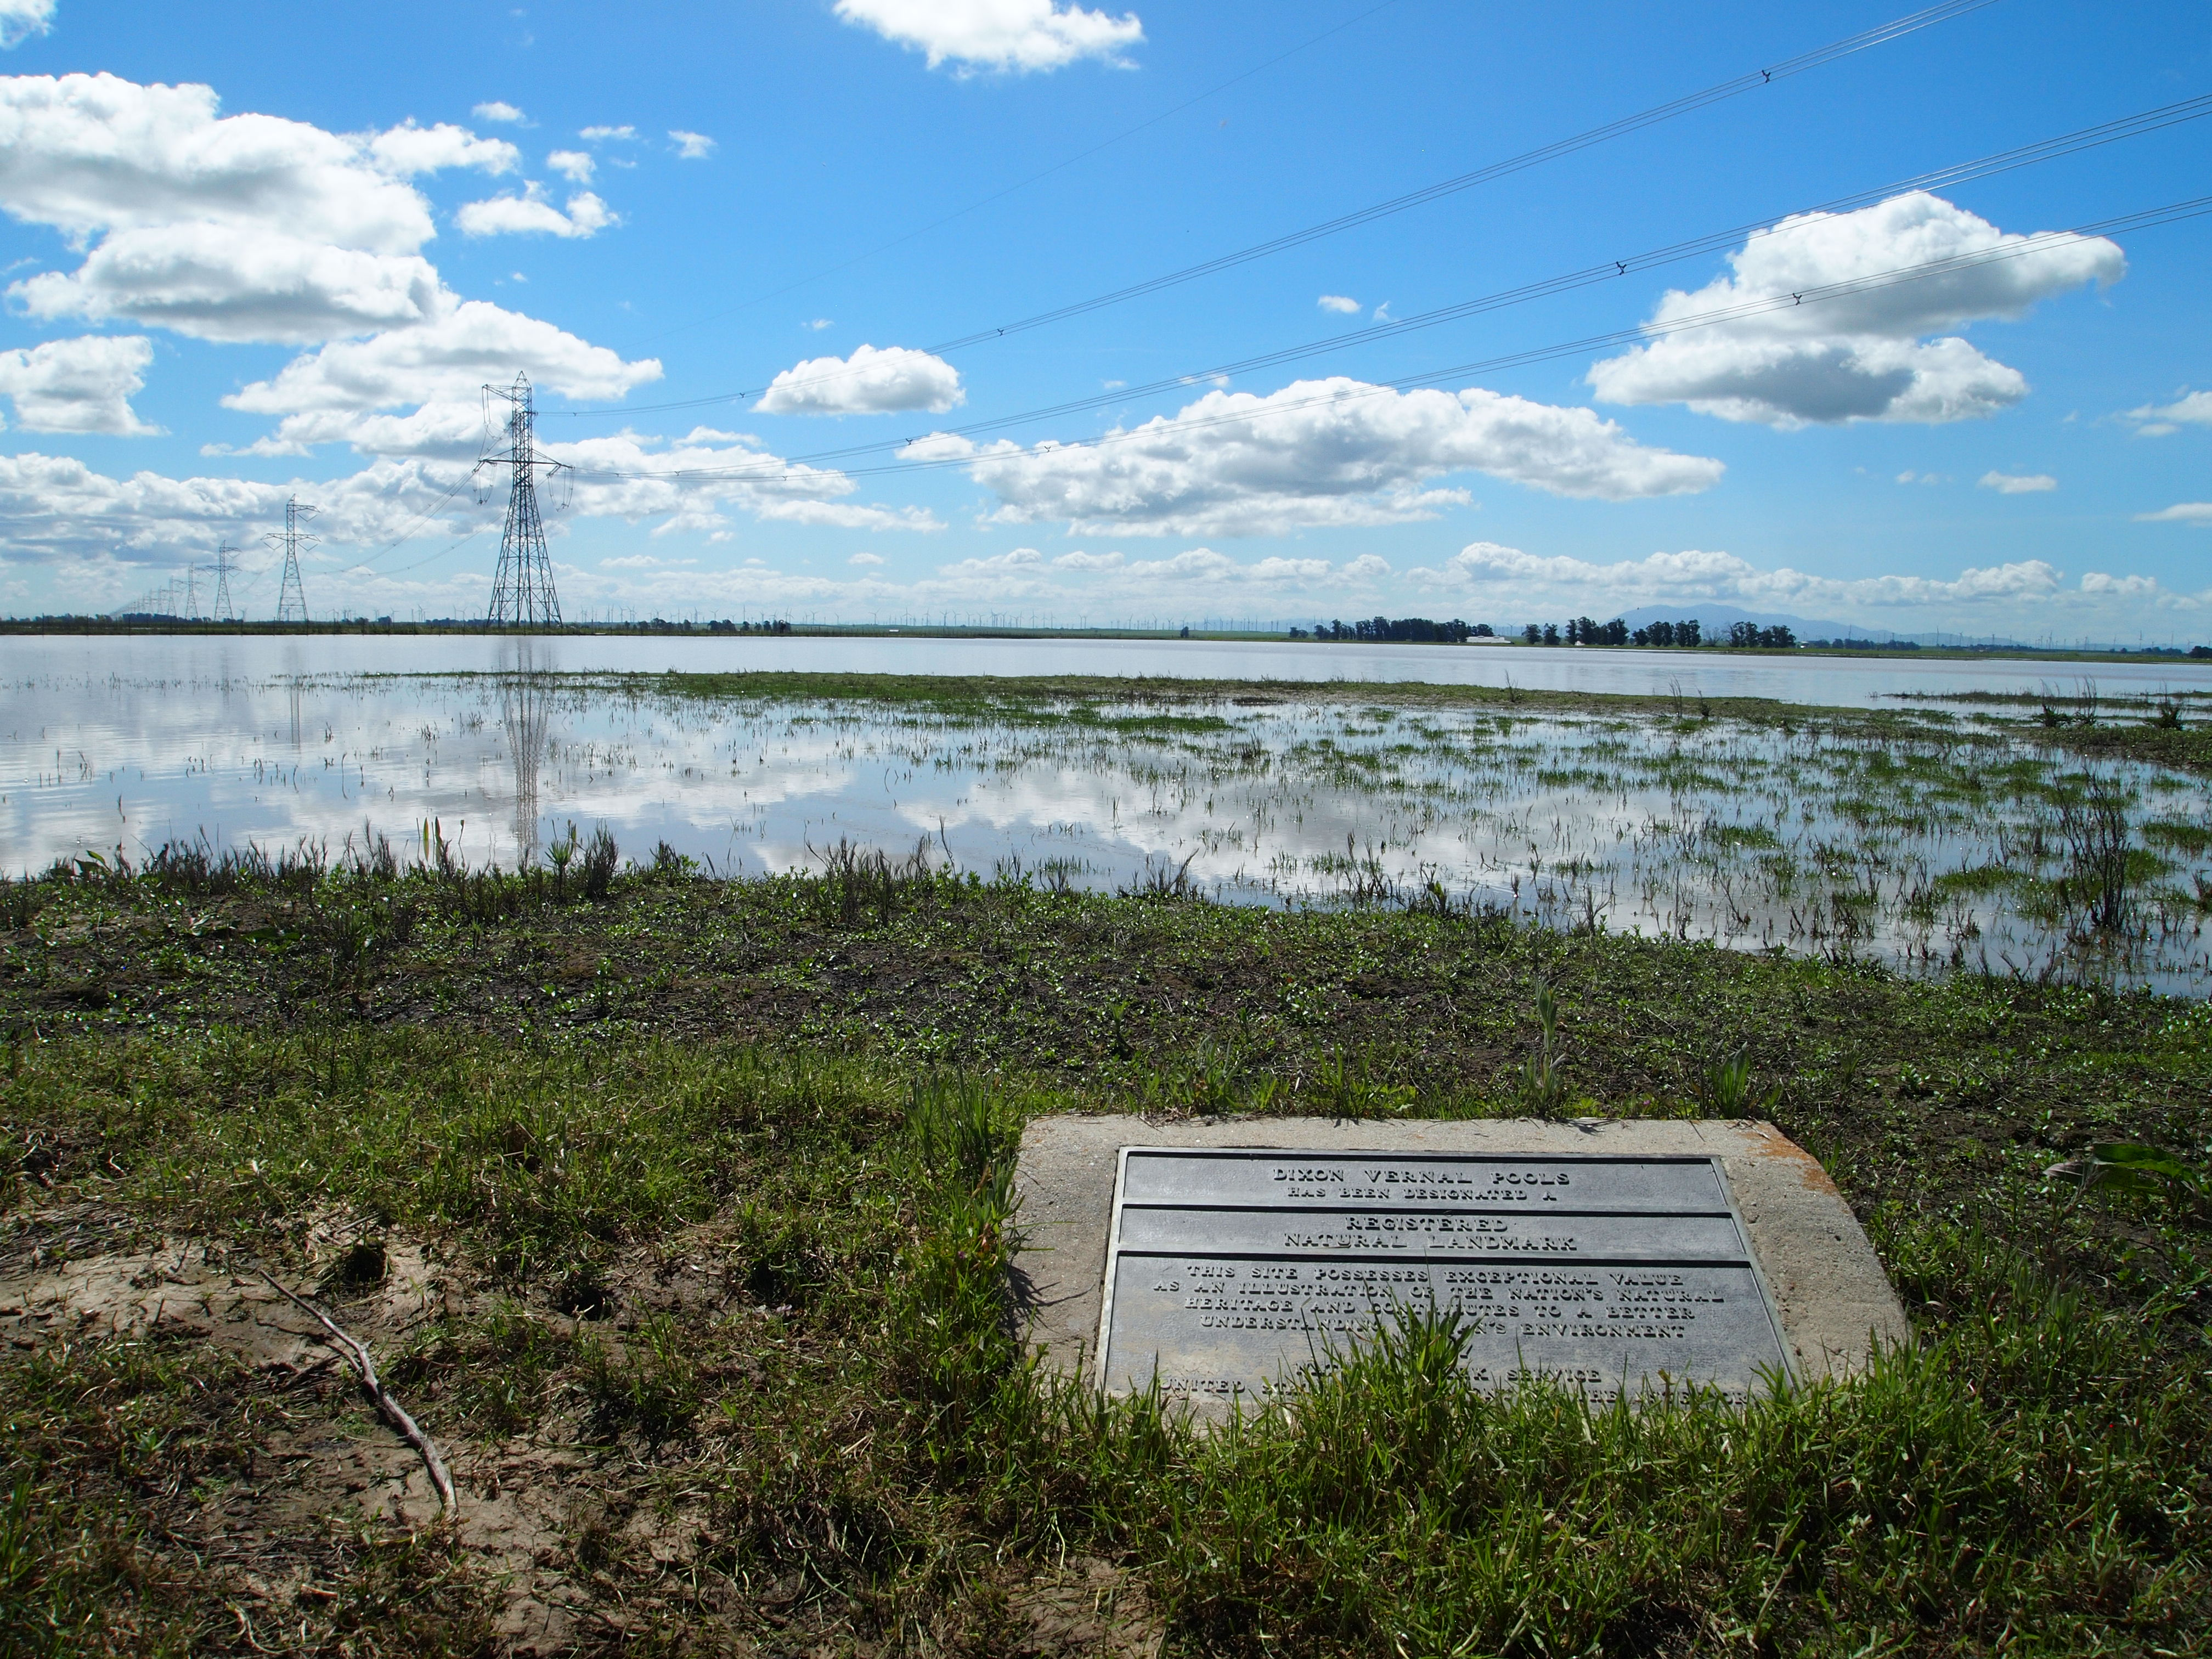 Dixon Vernal Pools National Landmark